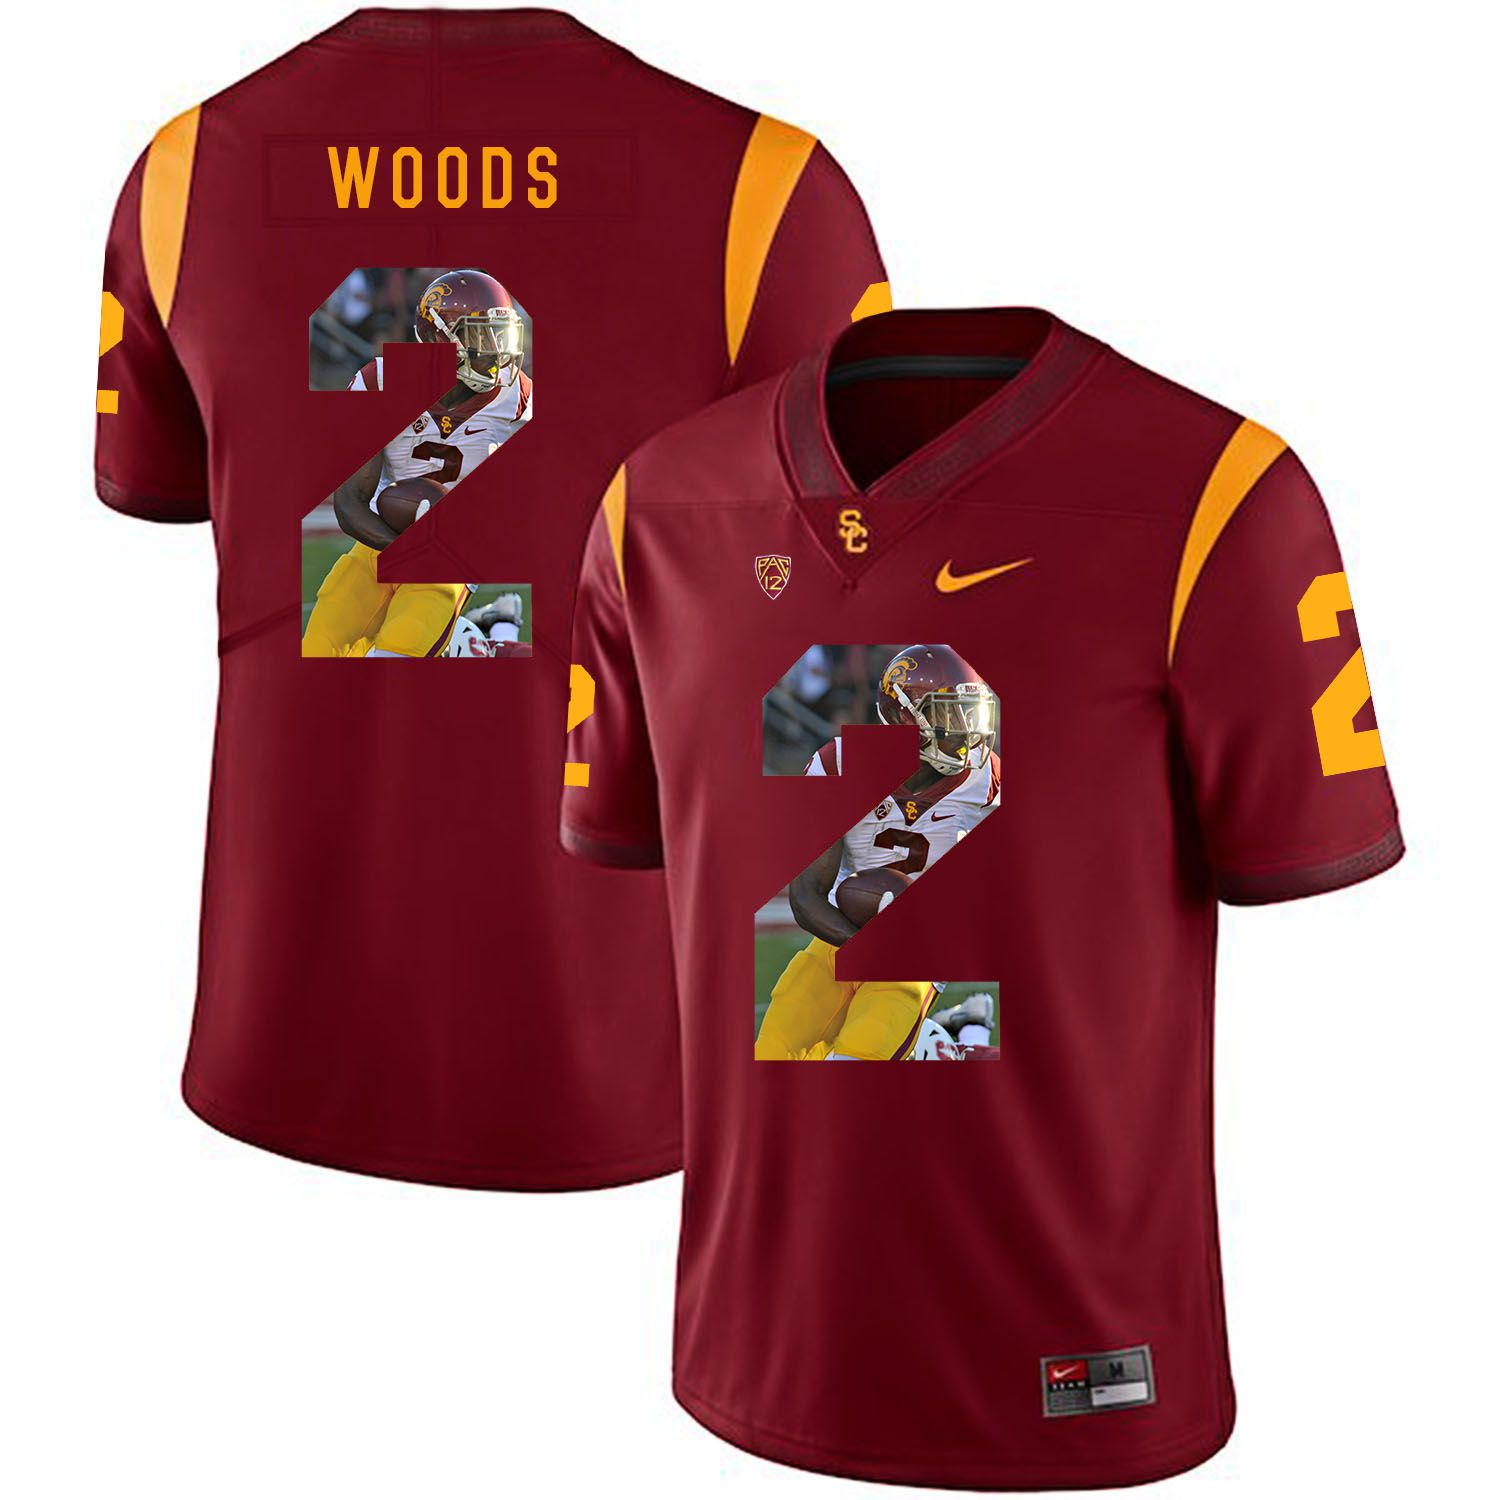 Men USC Trojans 2 Woods Red Fashion Edition Customized NCAA Jerseys